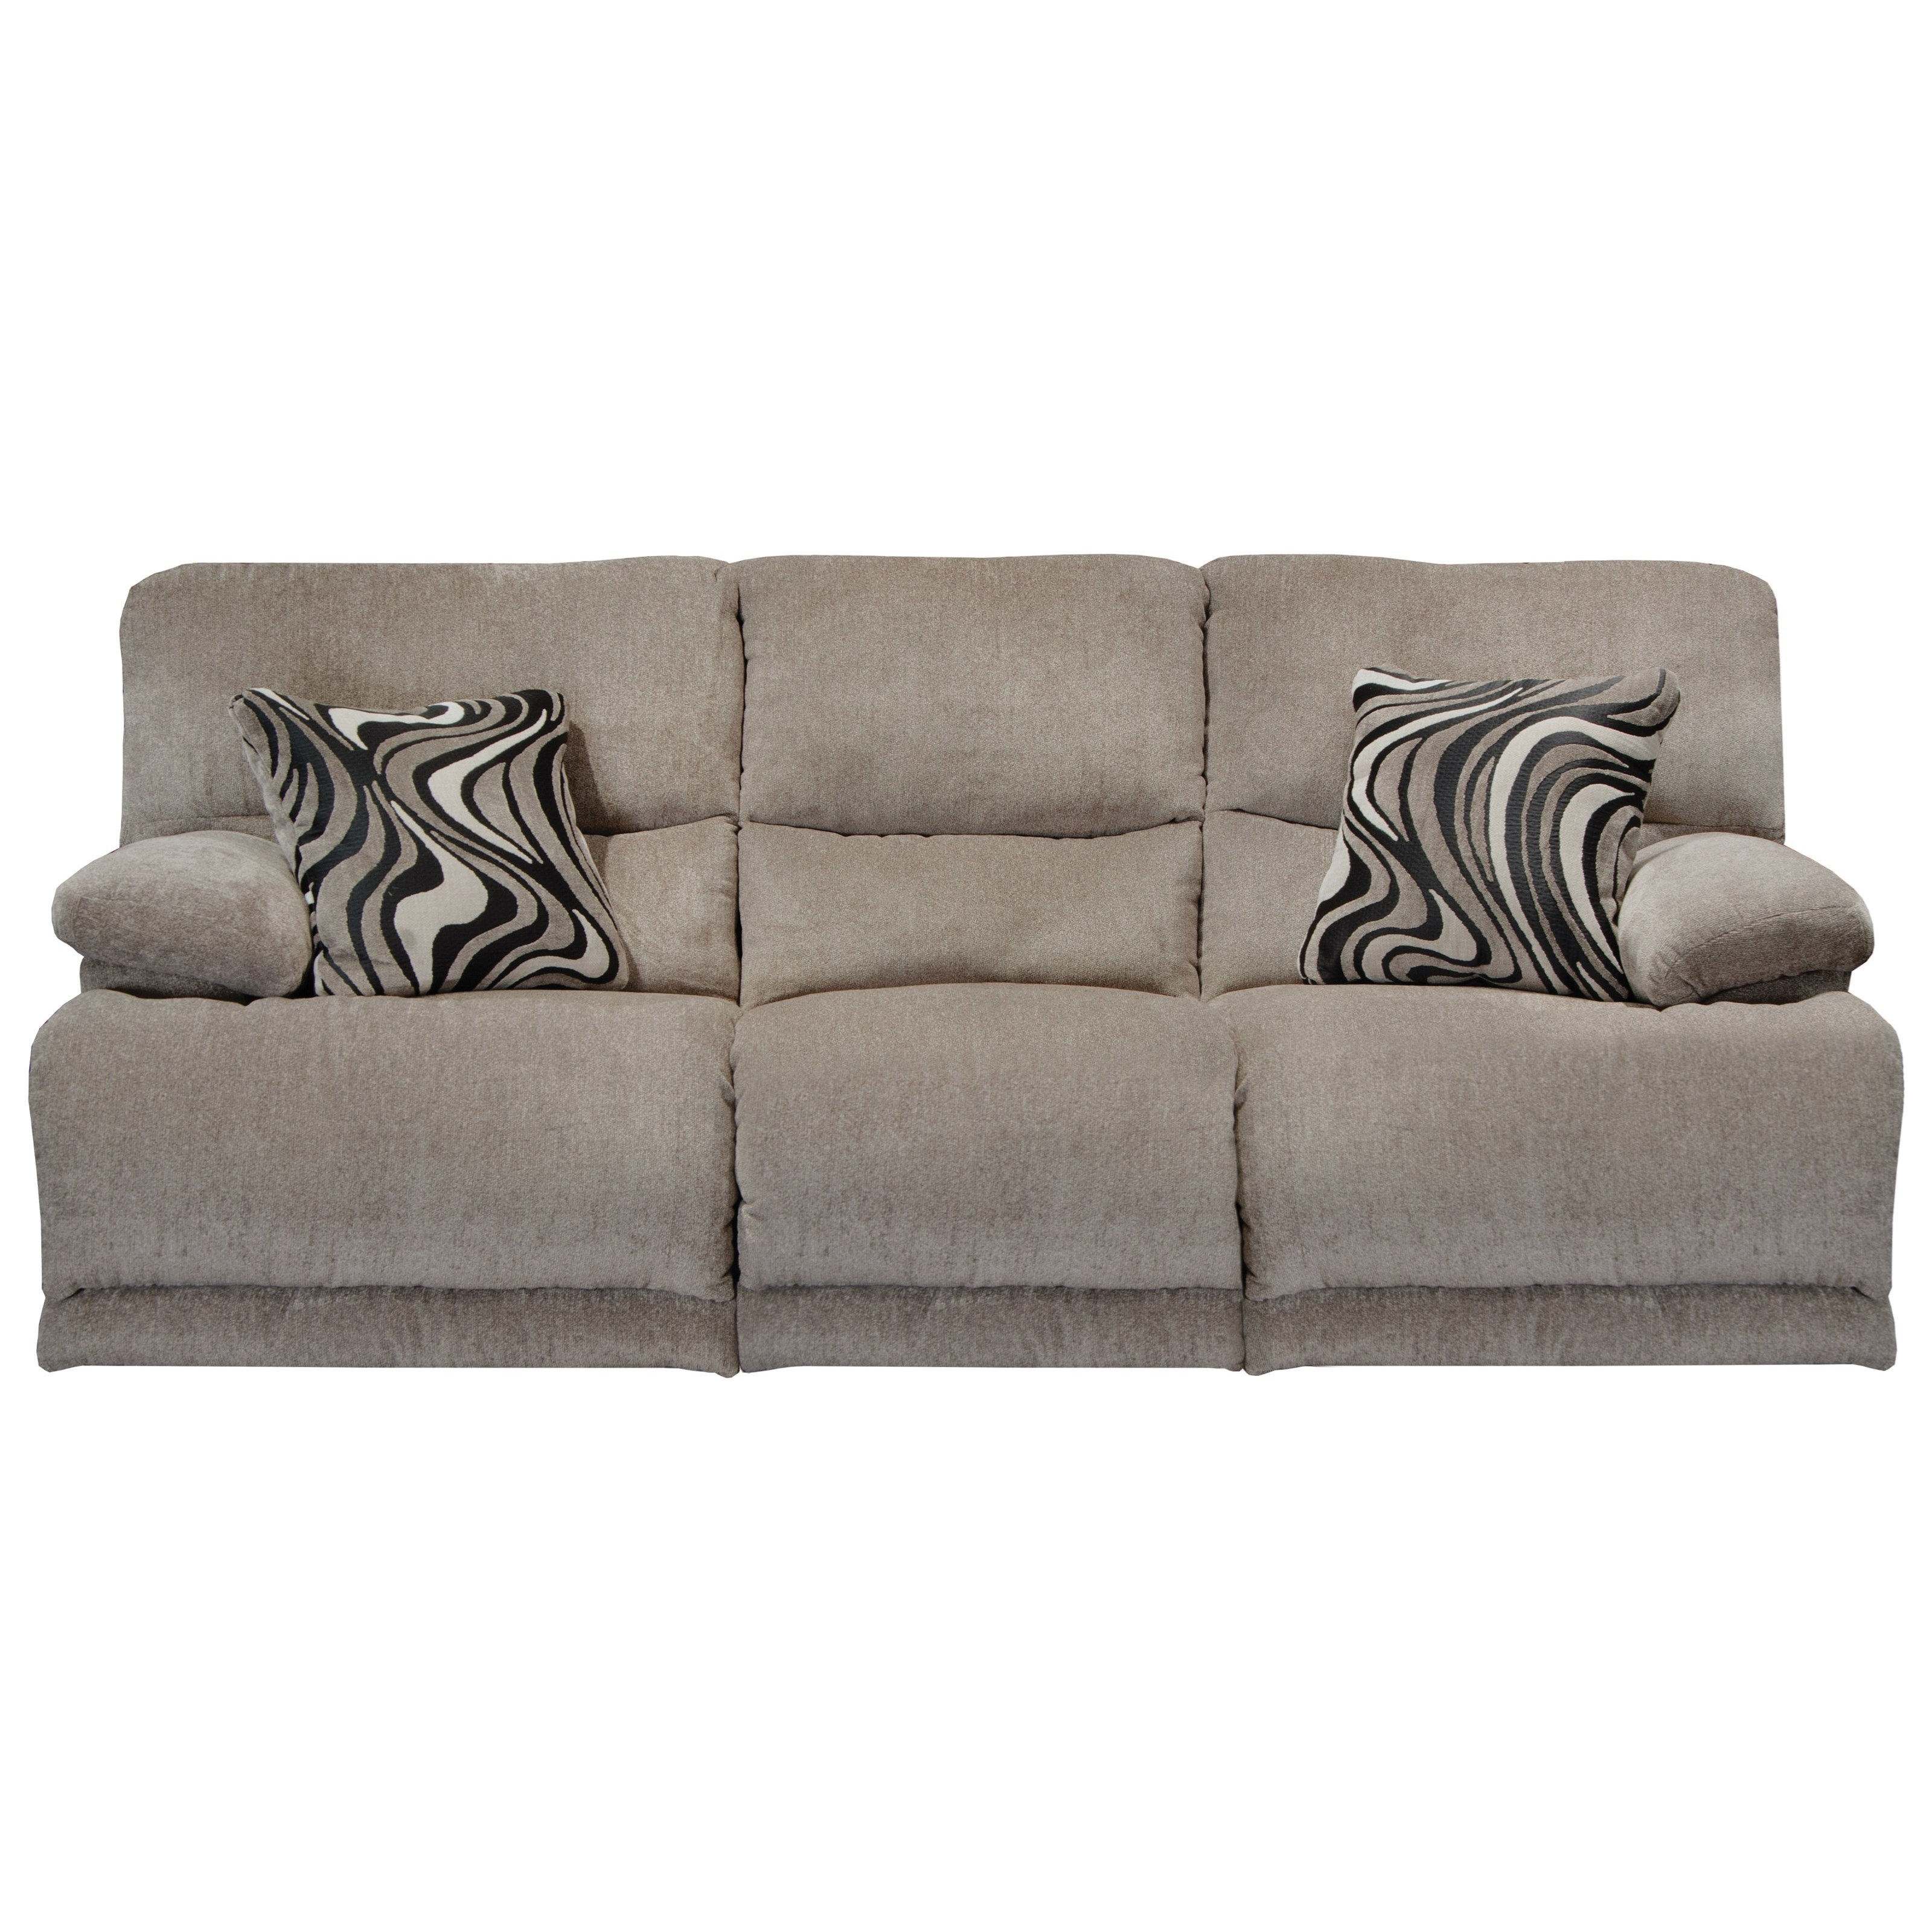 Catnapper Jules Casual Reclining Sofa With Pillow Arms